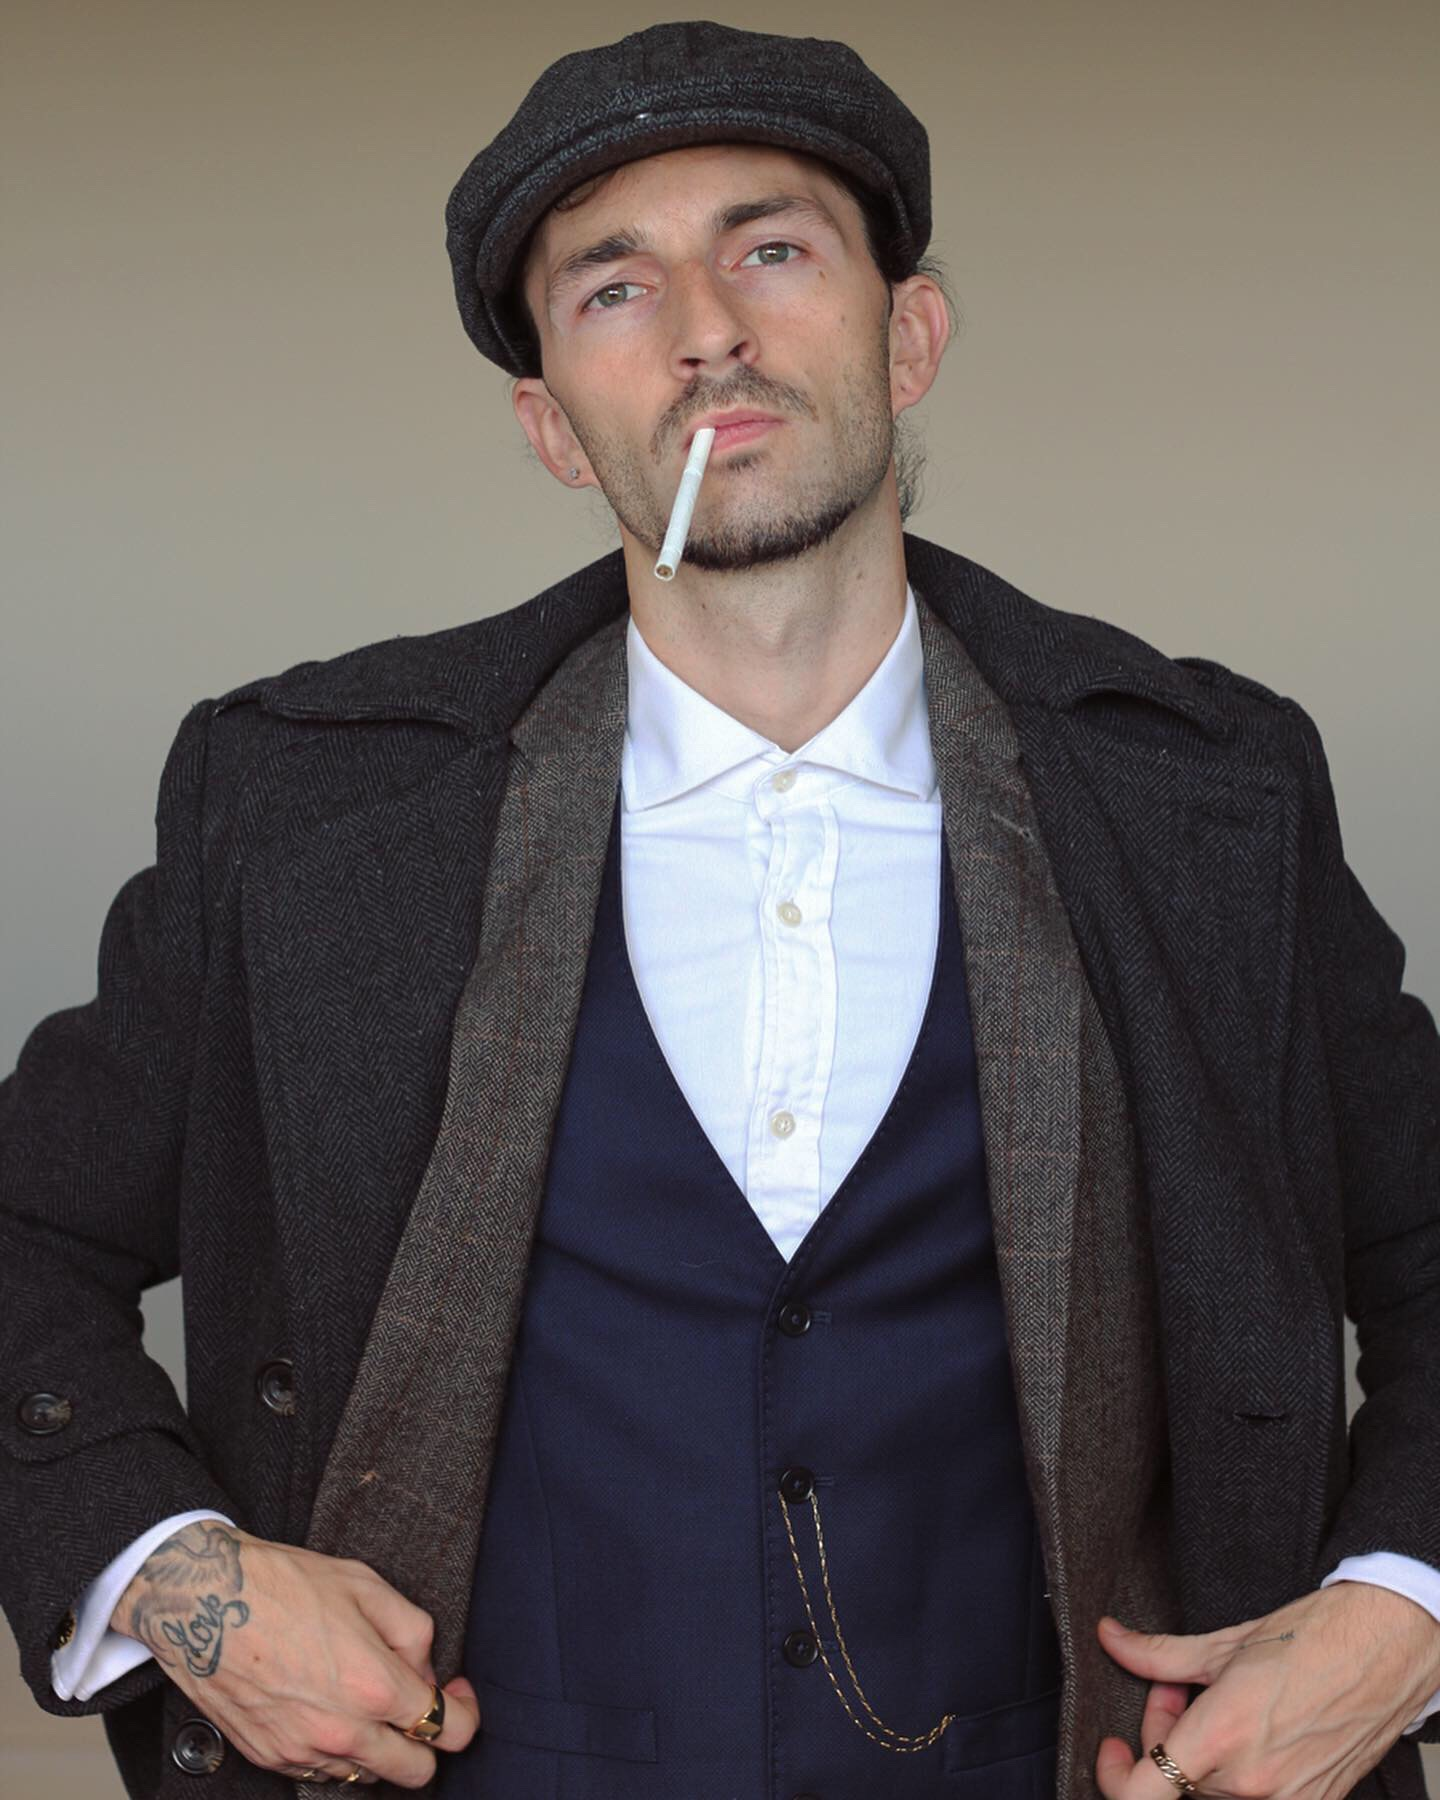 Peaky Blinders photoshoot